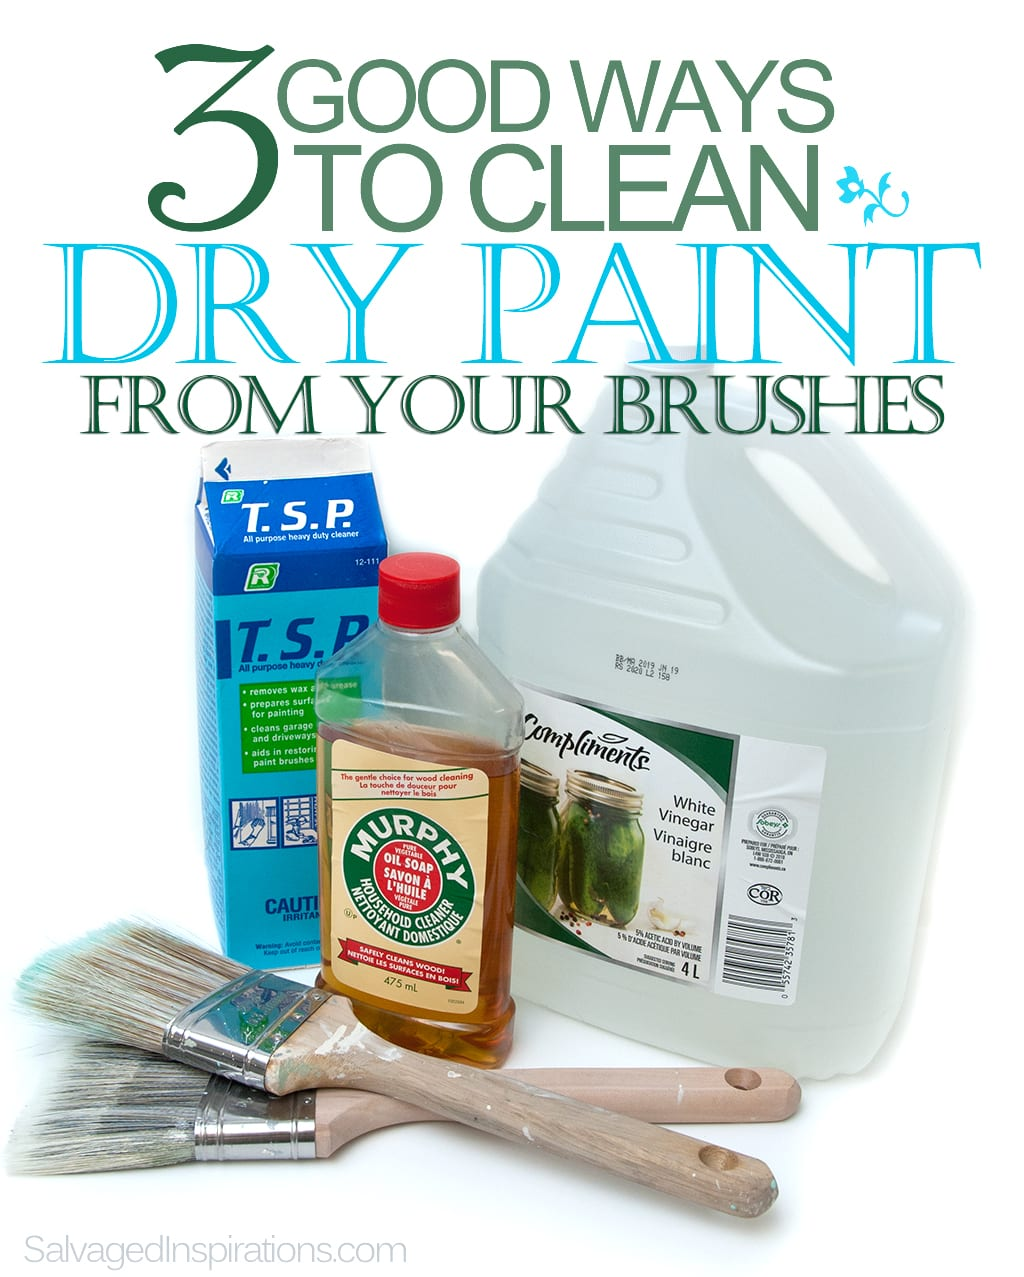 How to clean paintbrushes - How To Clean Dried Paint Off Brush